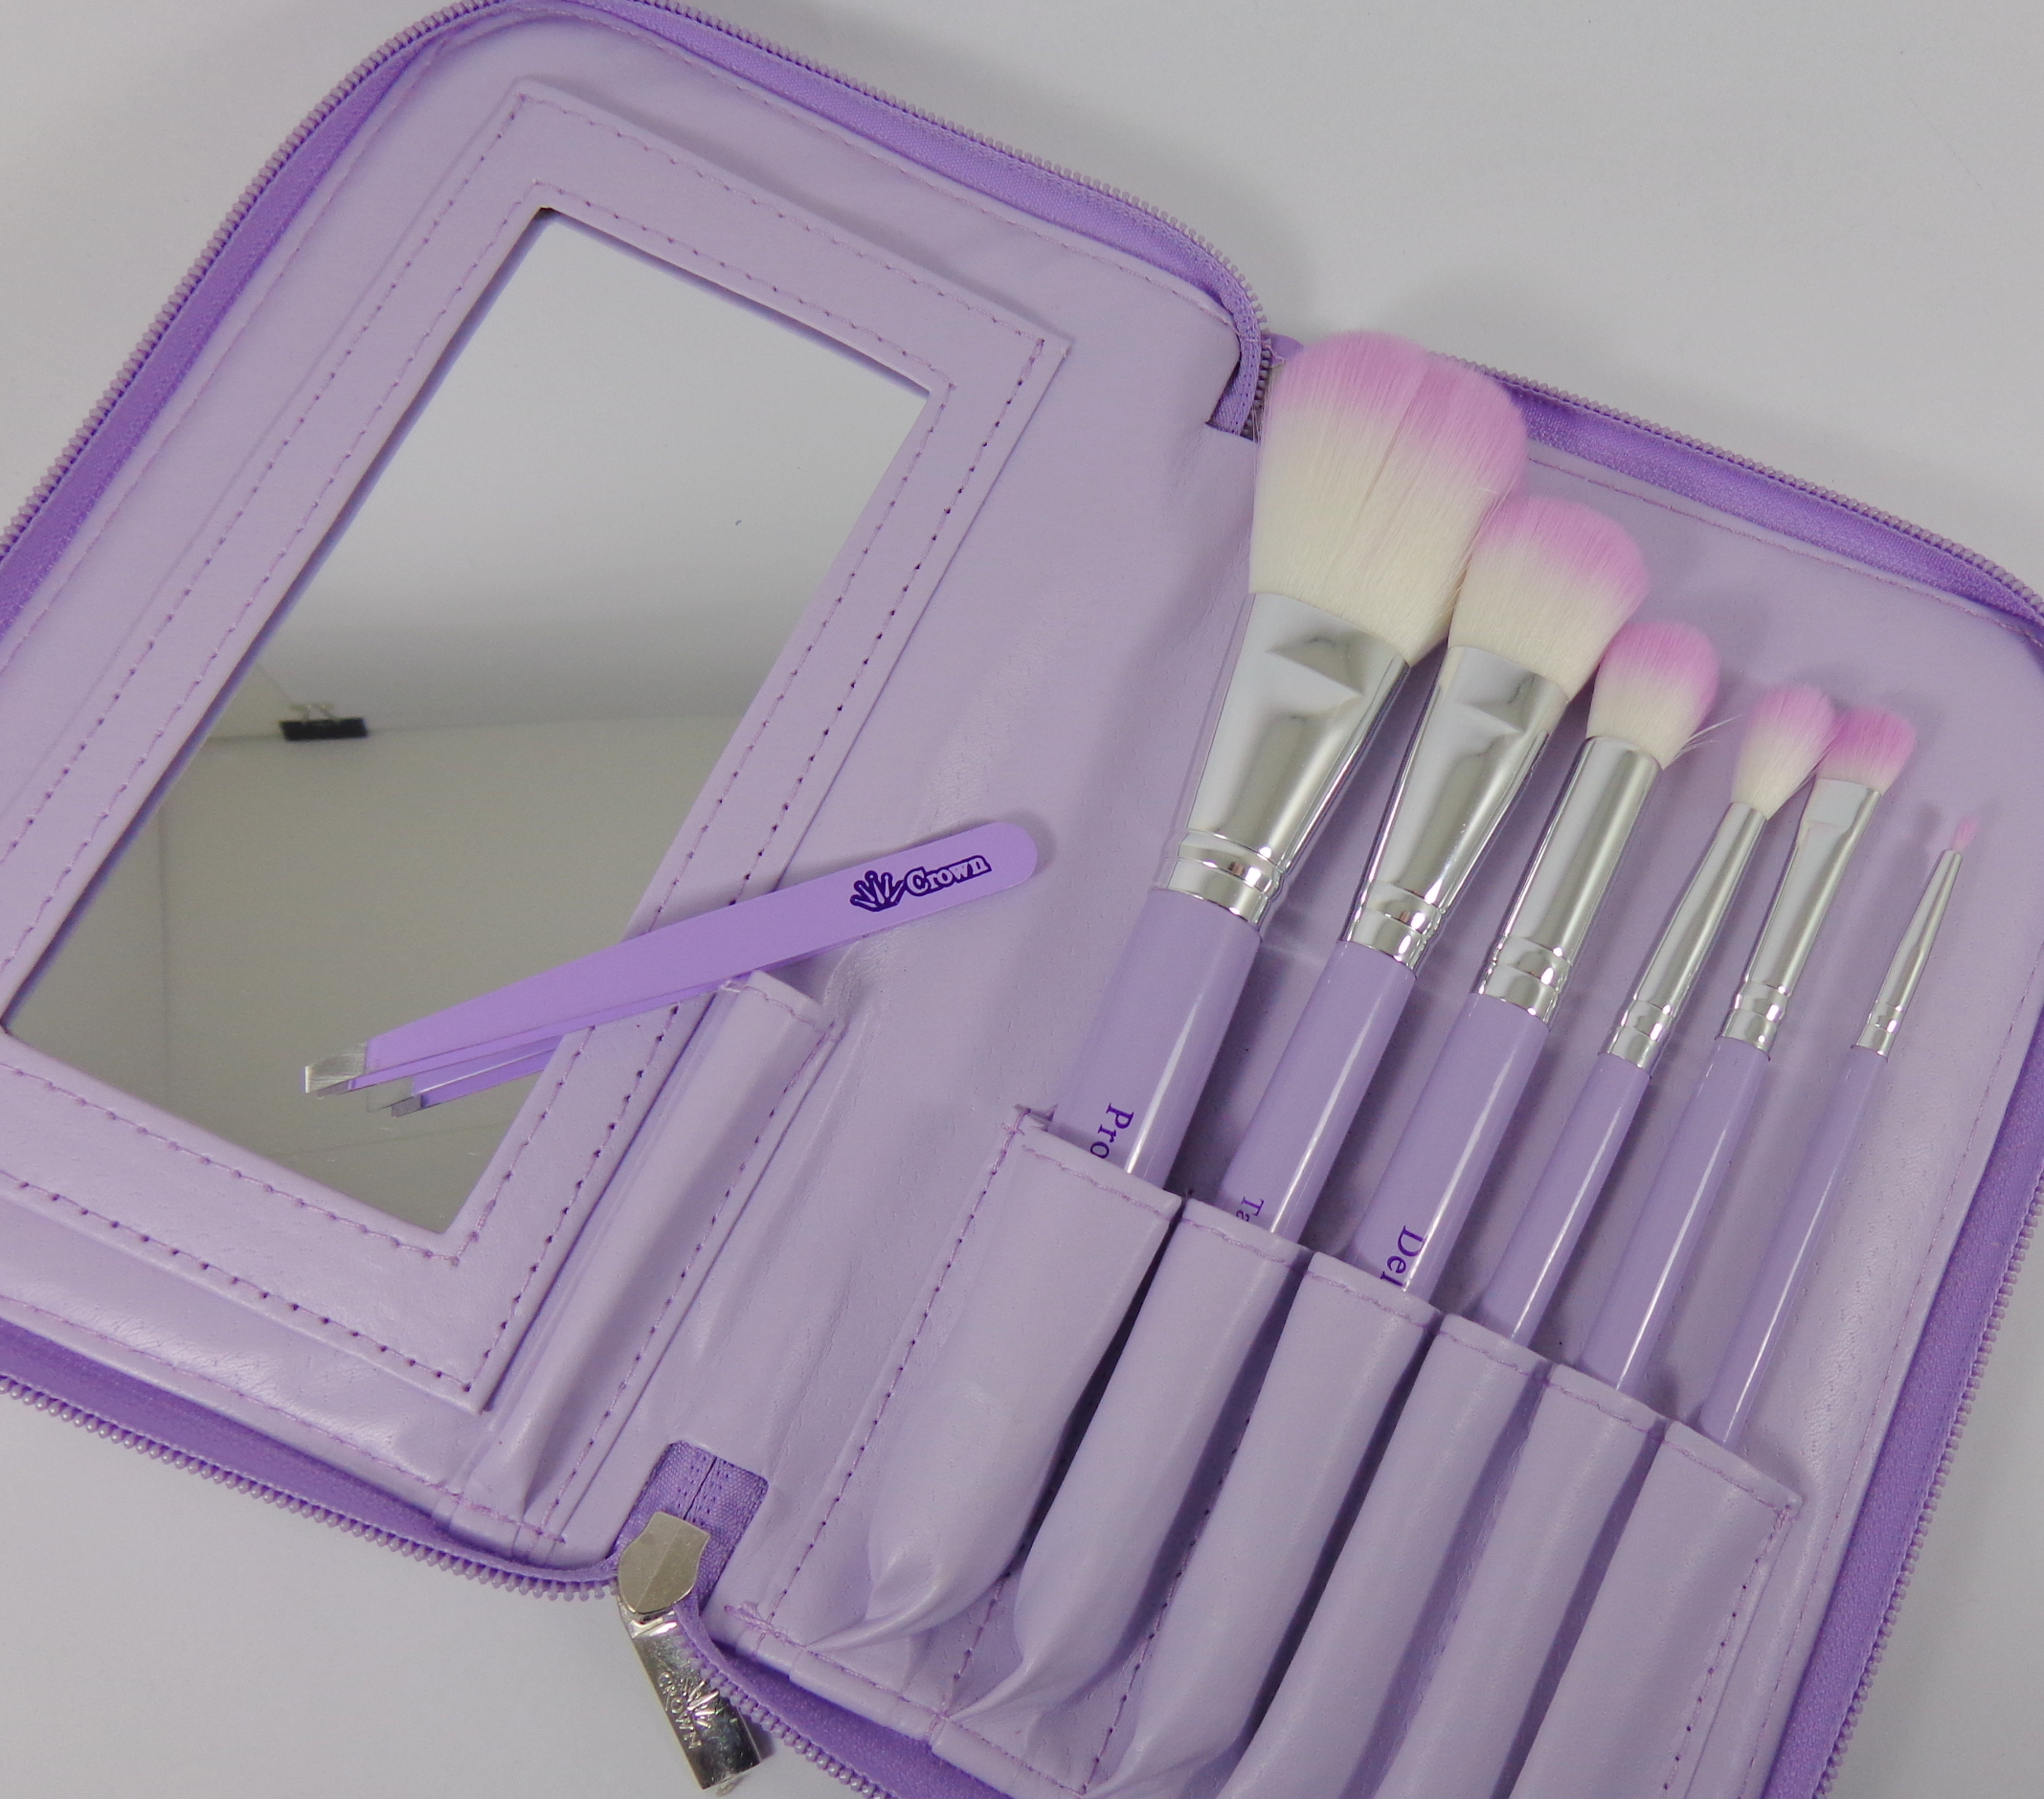 Review: Crown Brush 6-Piece HD Cosmetic Brush Set